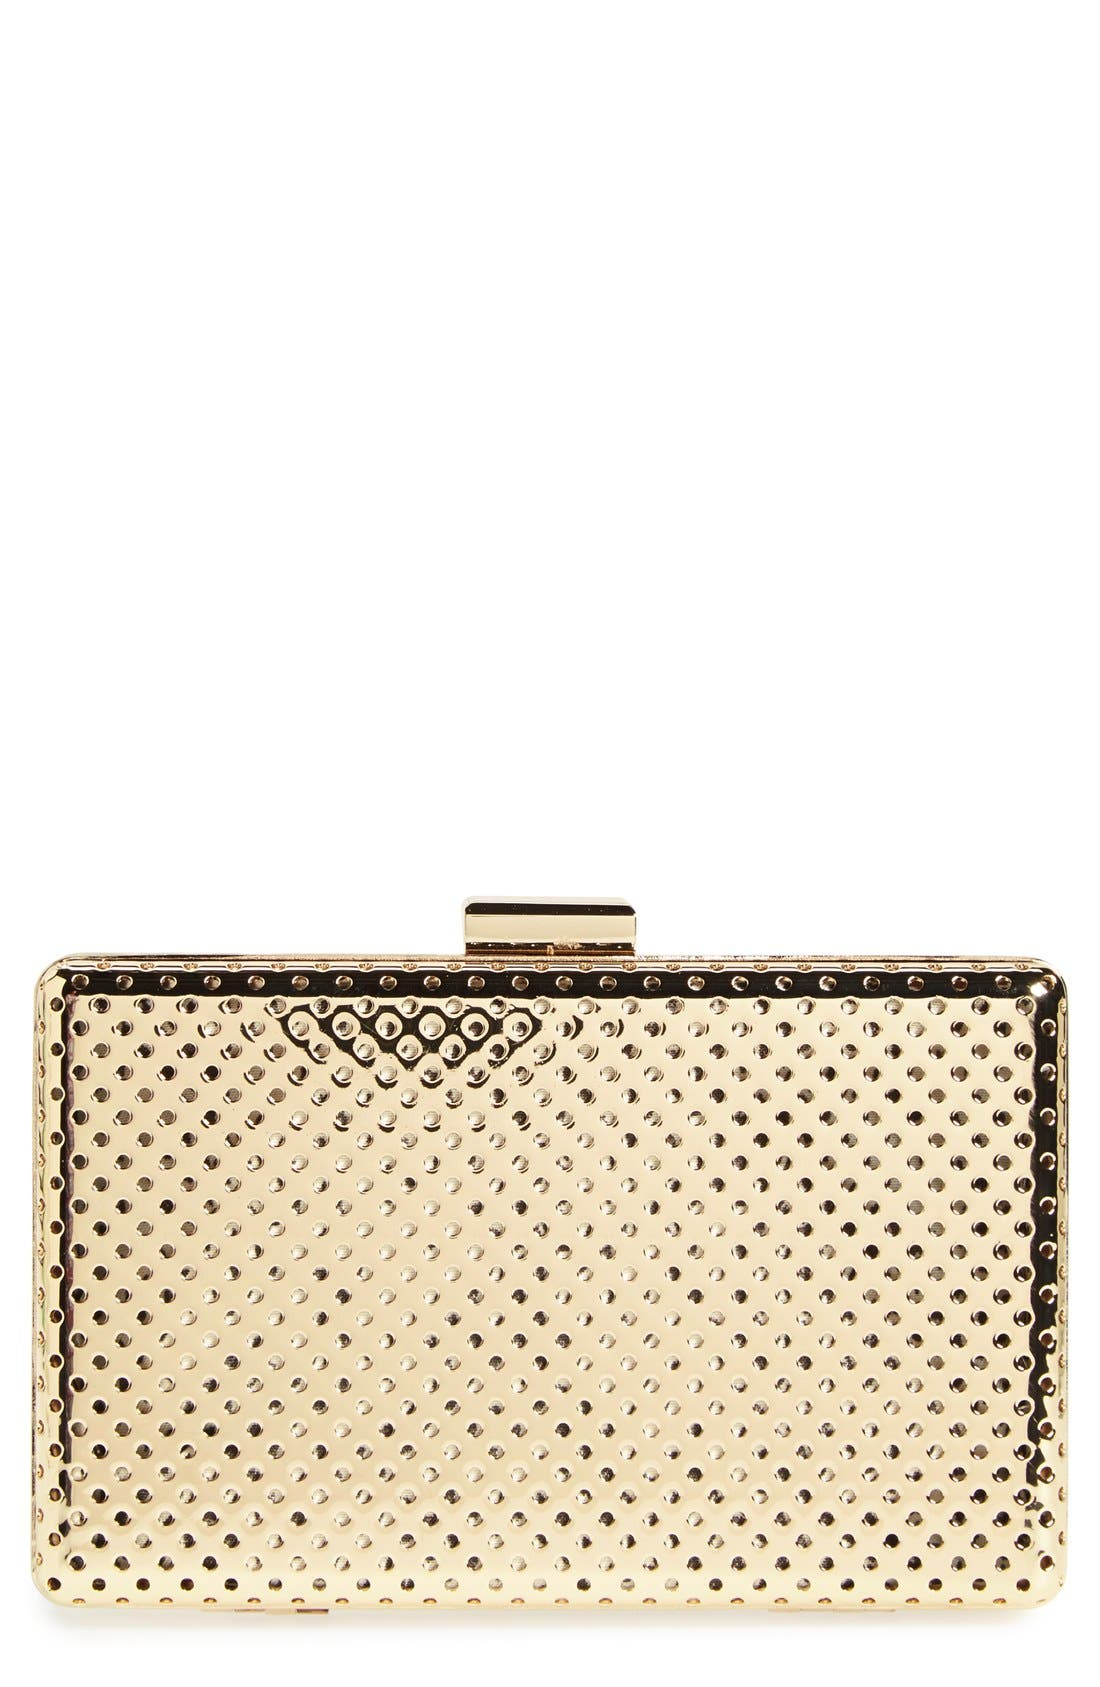 Alternate Image 1 Selected - Sole Society 'Raquelle' Perforated Metal Box Clutch